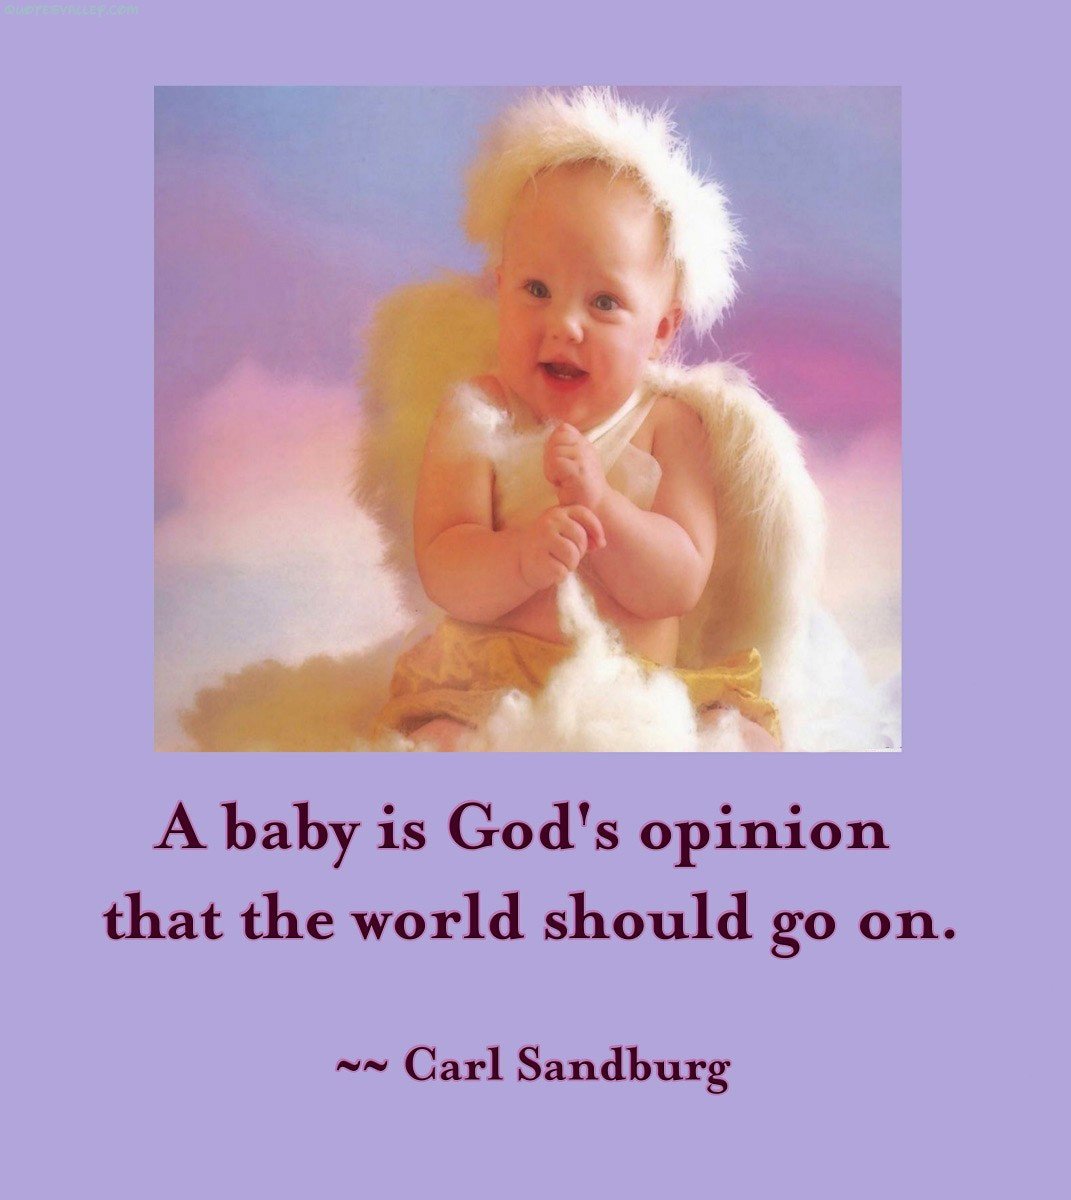 A Baby Is God's Opinion That The World Should Go On. - Carl Sandburg